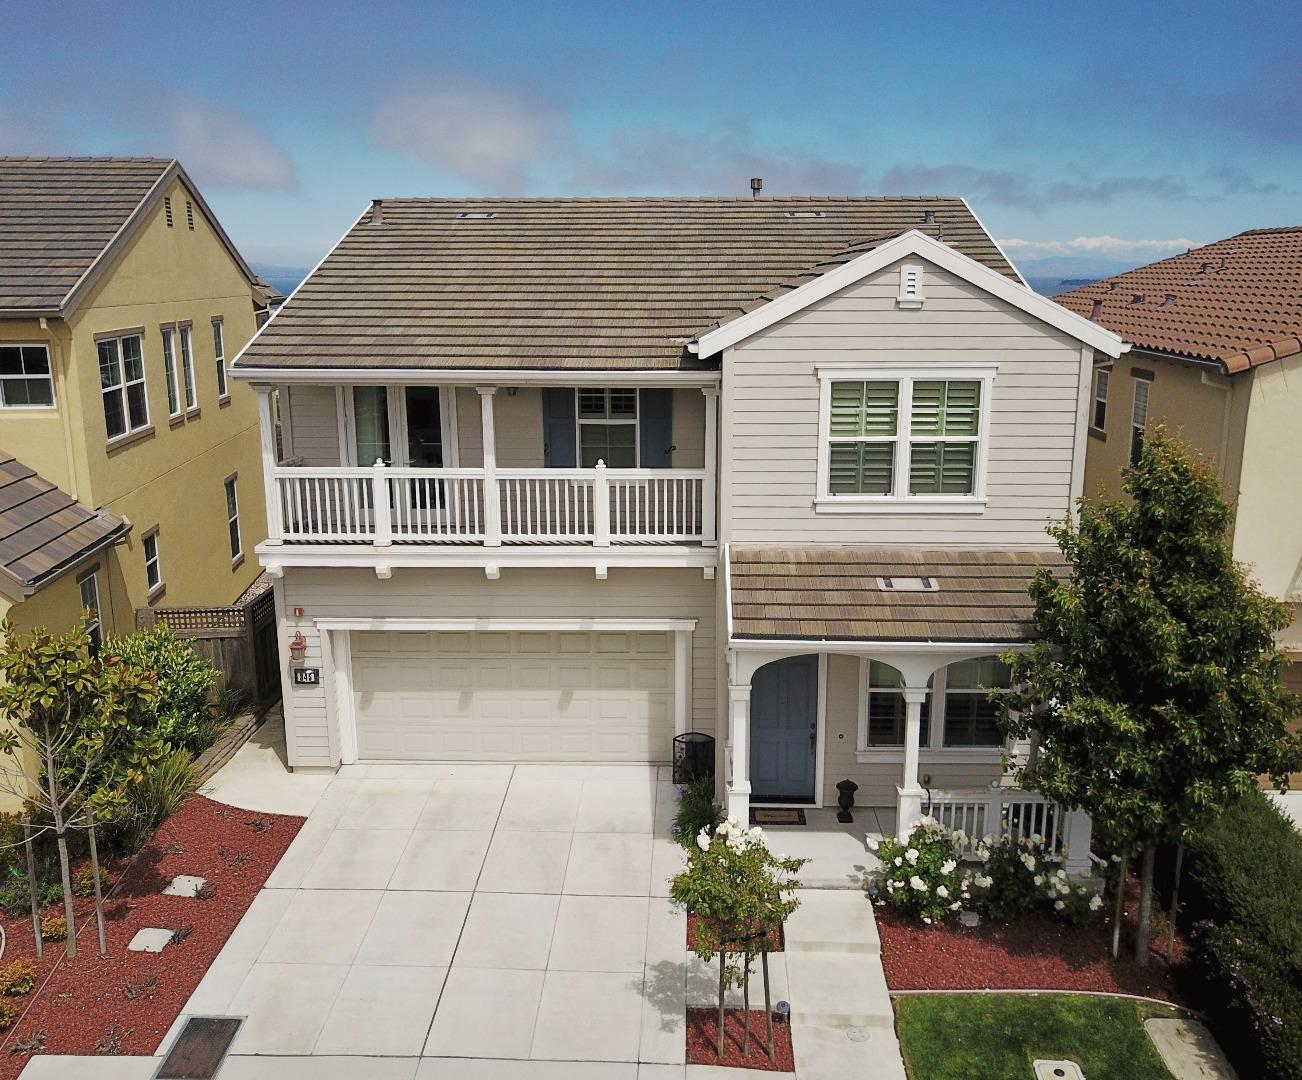 Single Family Home for Sale at 345 Merimont Circle San Bruno, California 94066 United States